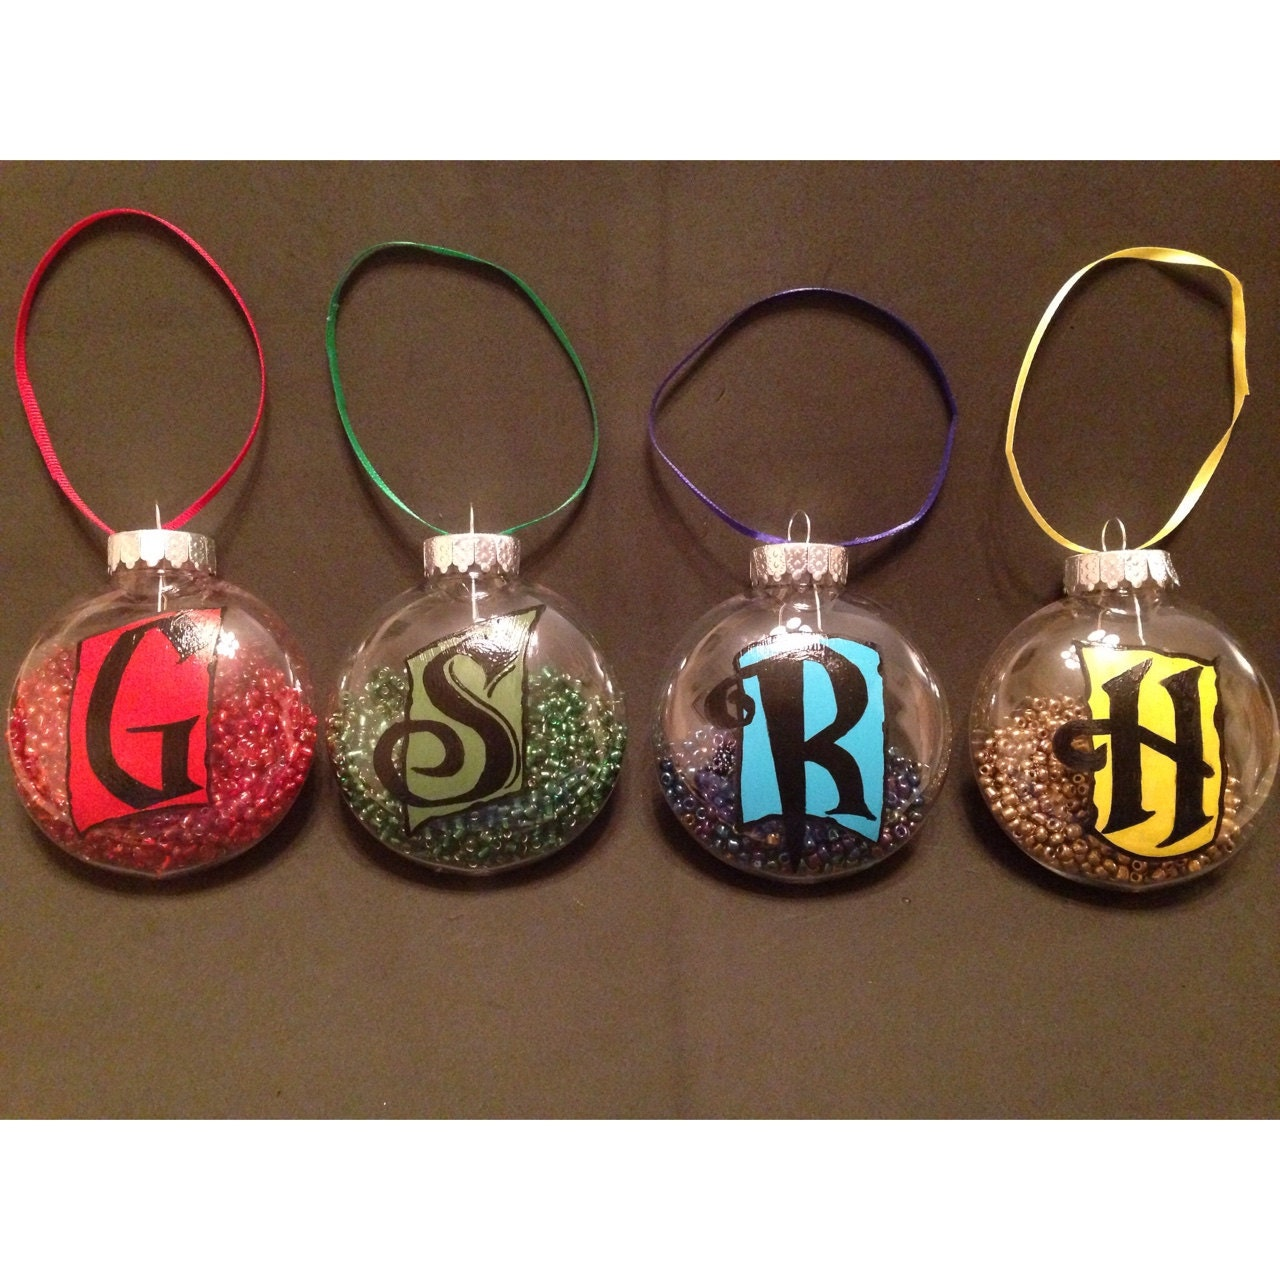 harry potter hogwarts house points set of 4 ornaments. Black Bedroom Furniture Sets. Home Design Ideas